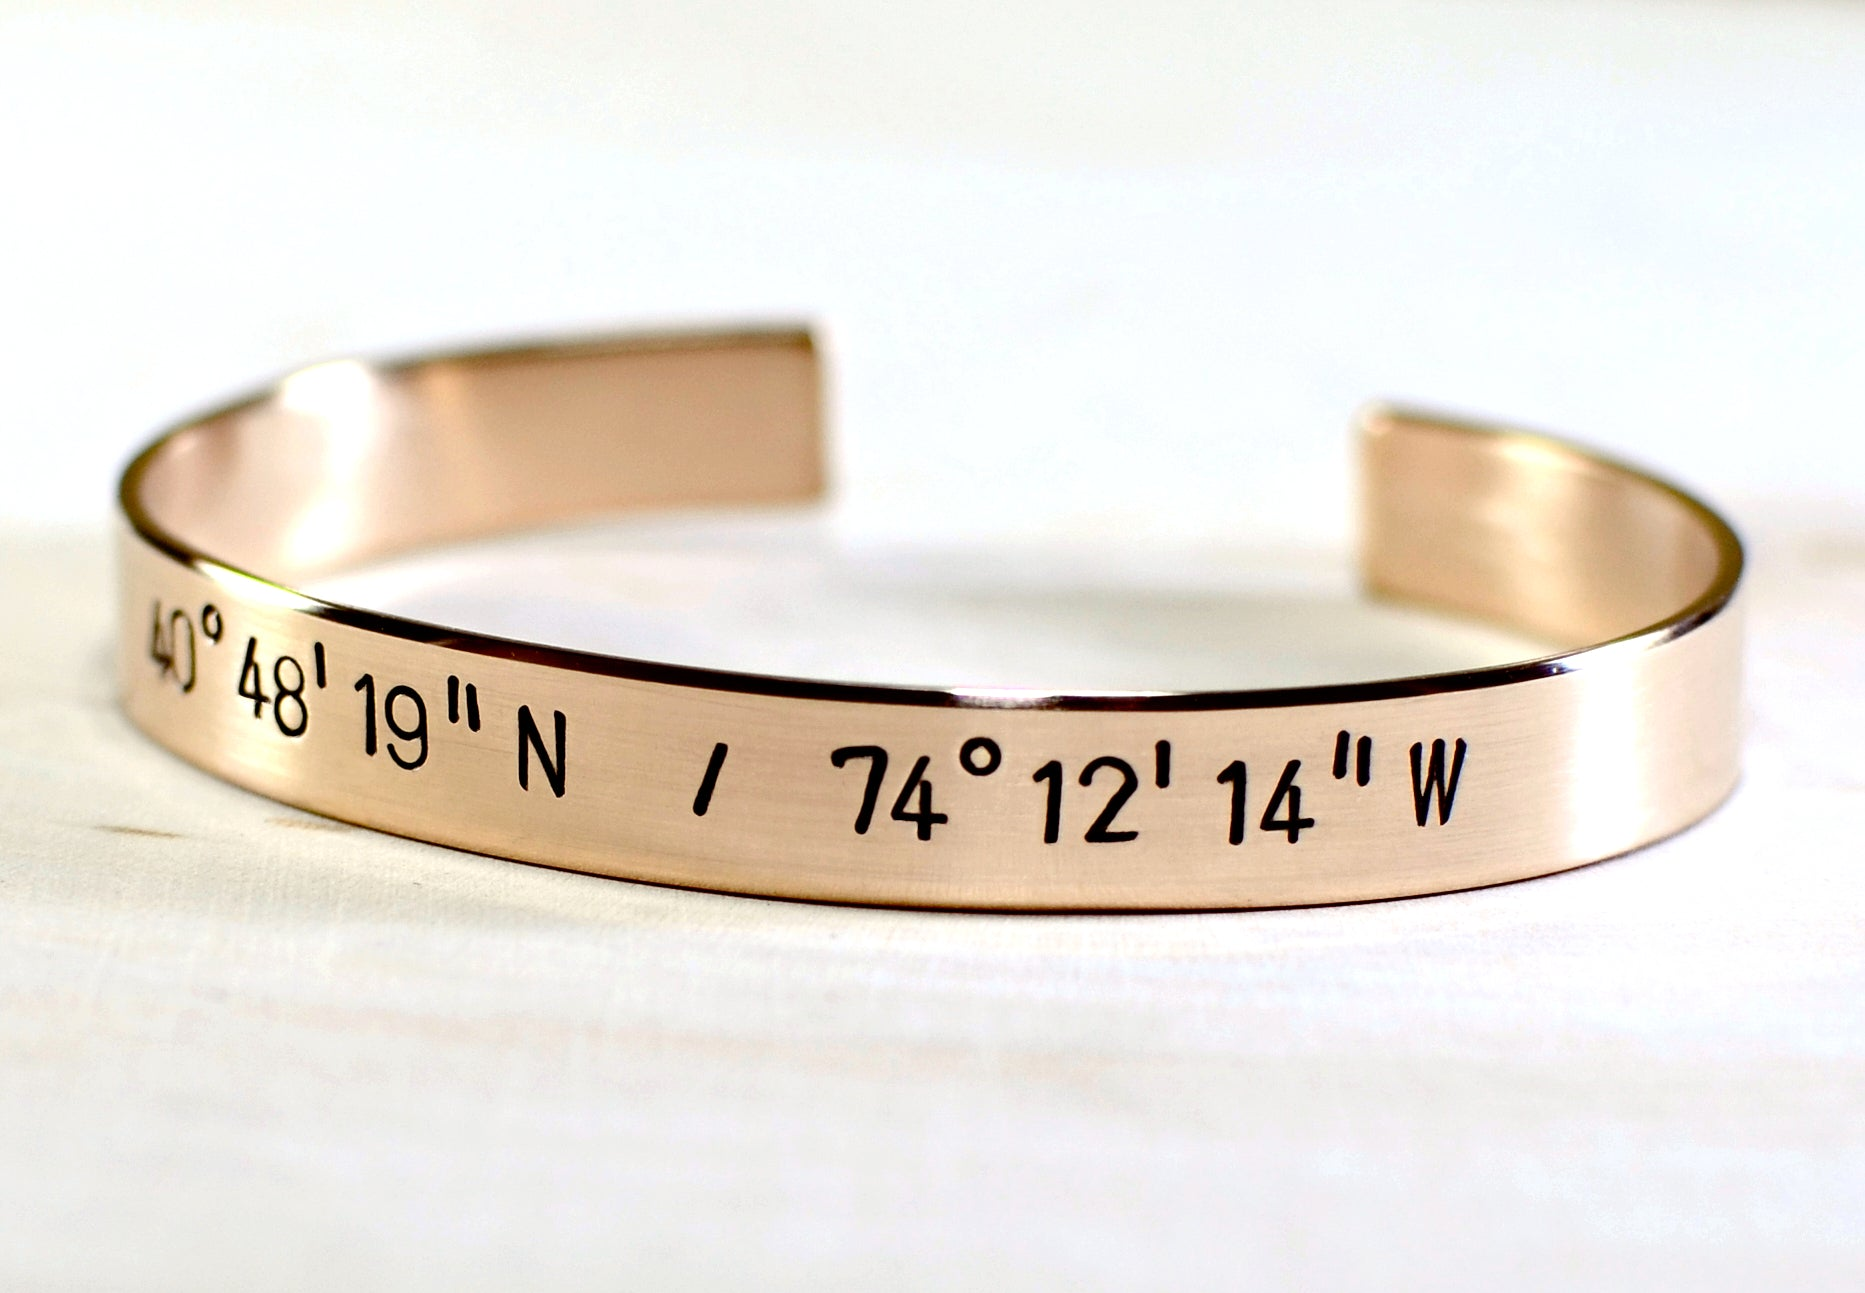 savings custom latitude cuffs bracelets on coordinates longitude skinny personalized jewelry cuff new bracelet shop etsy silver thin gracepersonalized